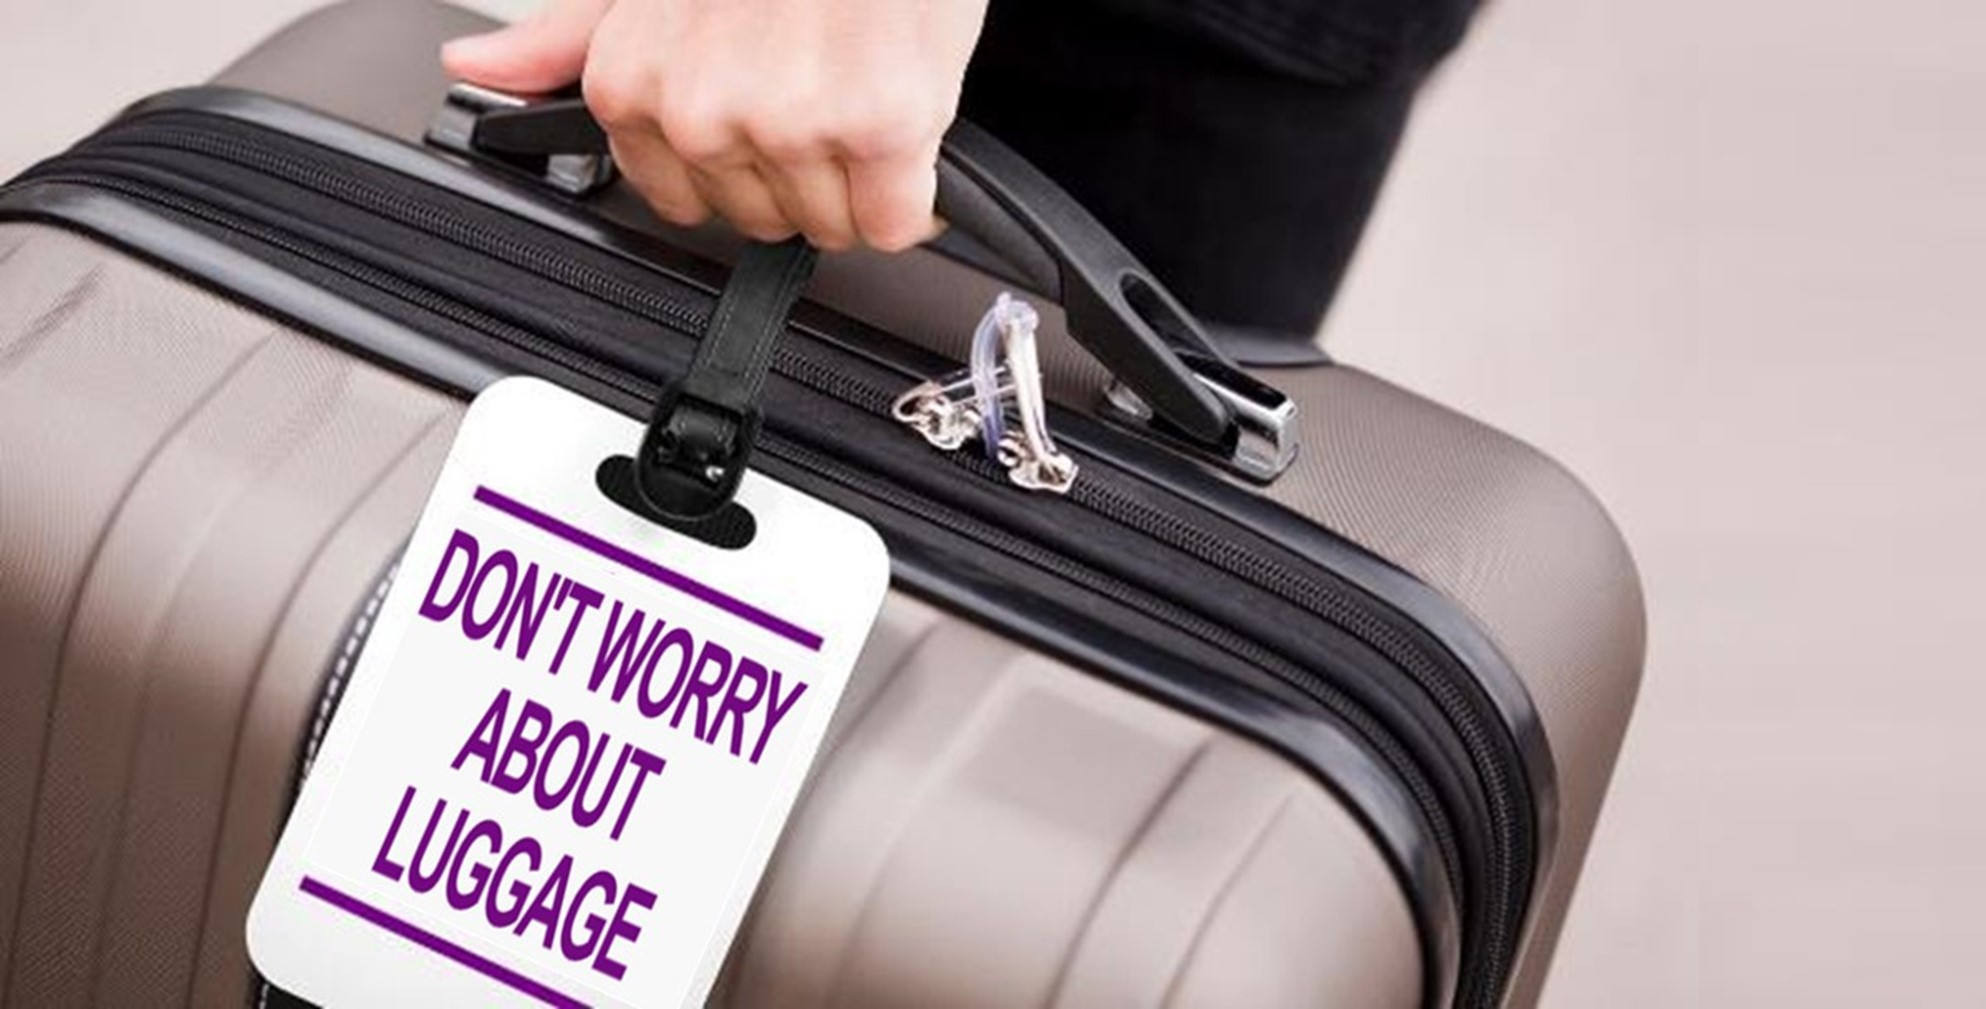 DON'T WORRY ABOUT LUGGAGE